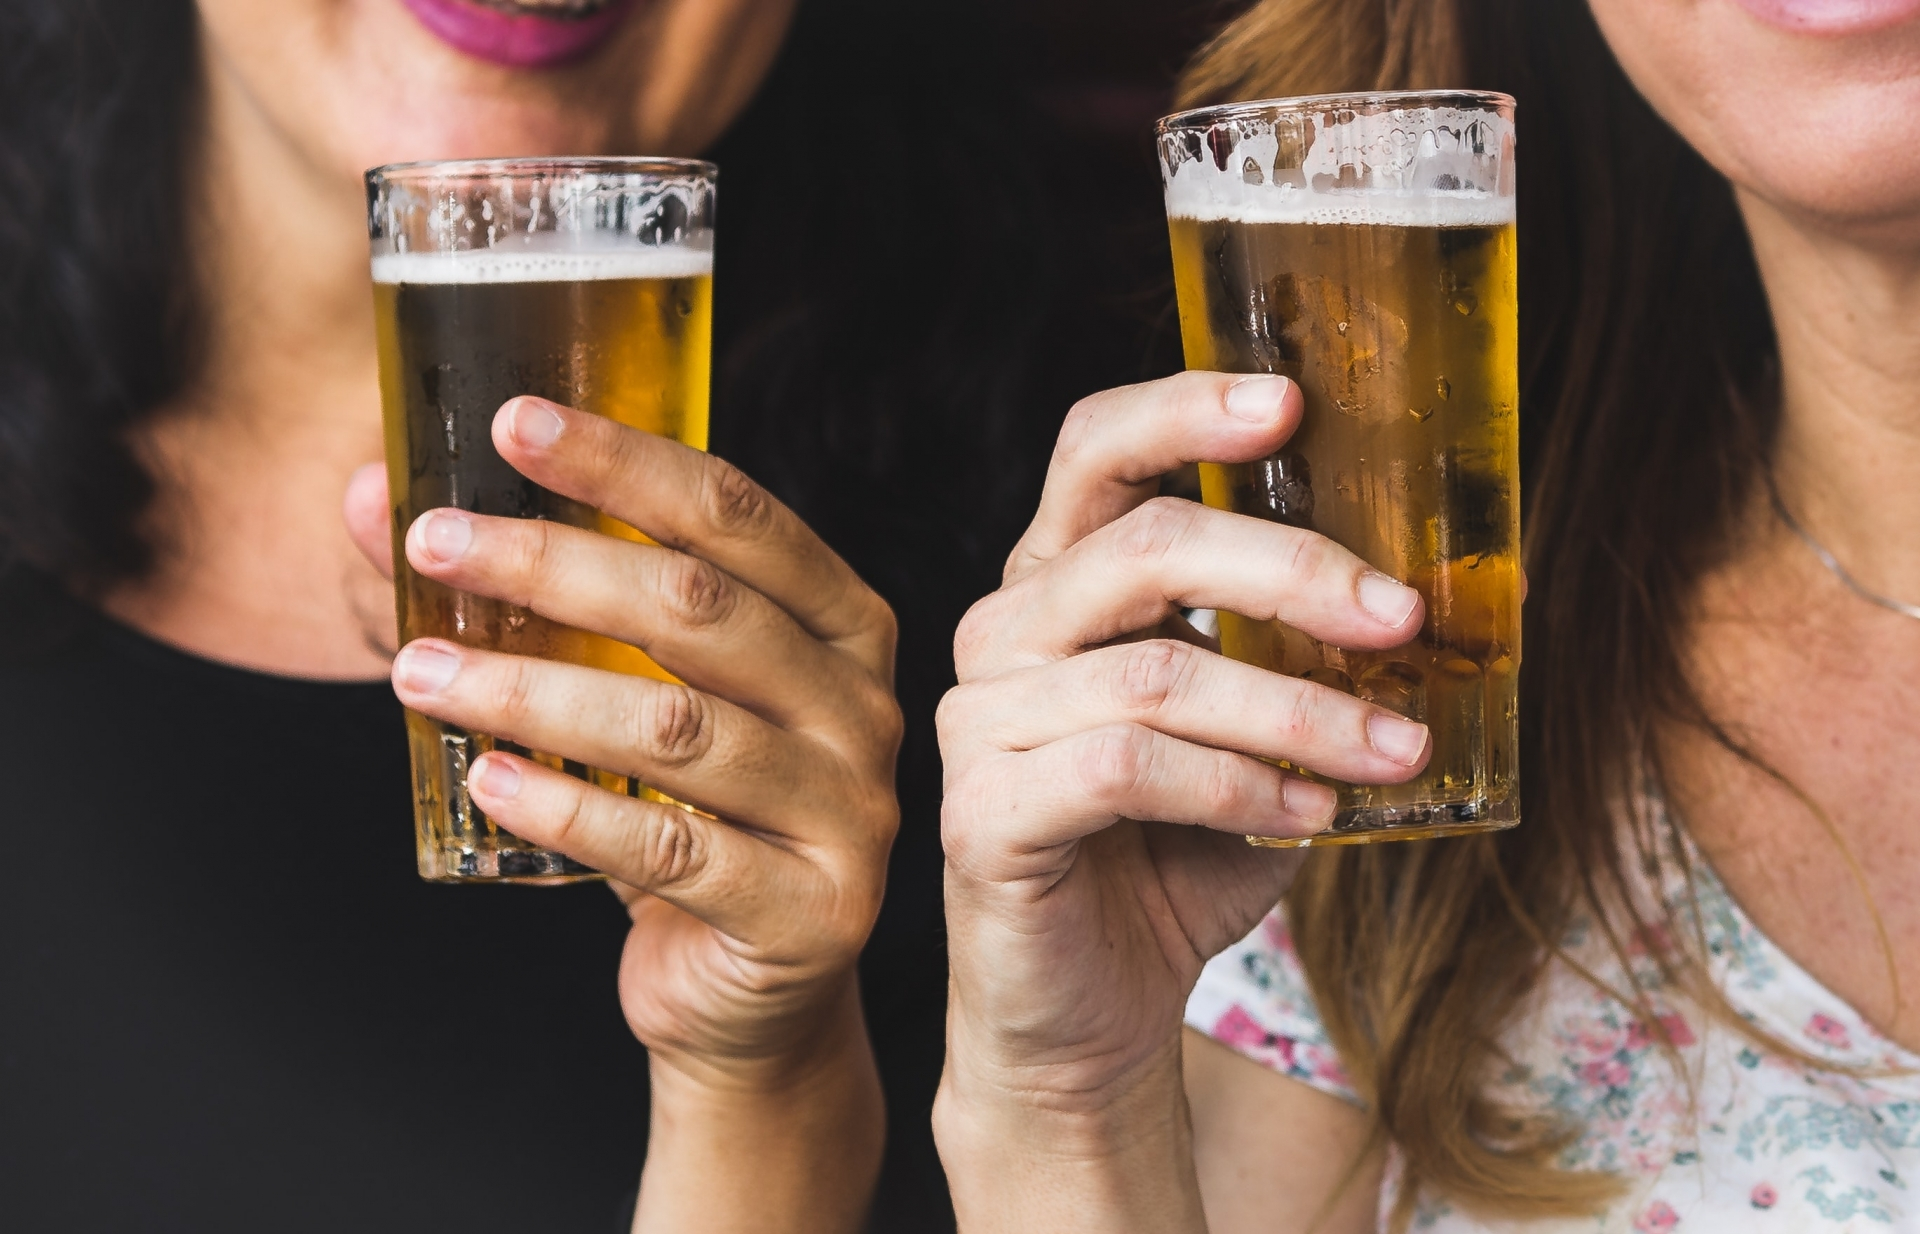 Beer giants starting to feel brunt of COVID-19 pandemic